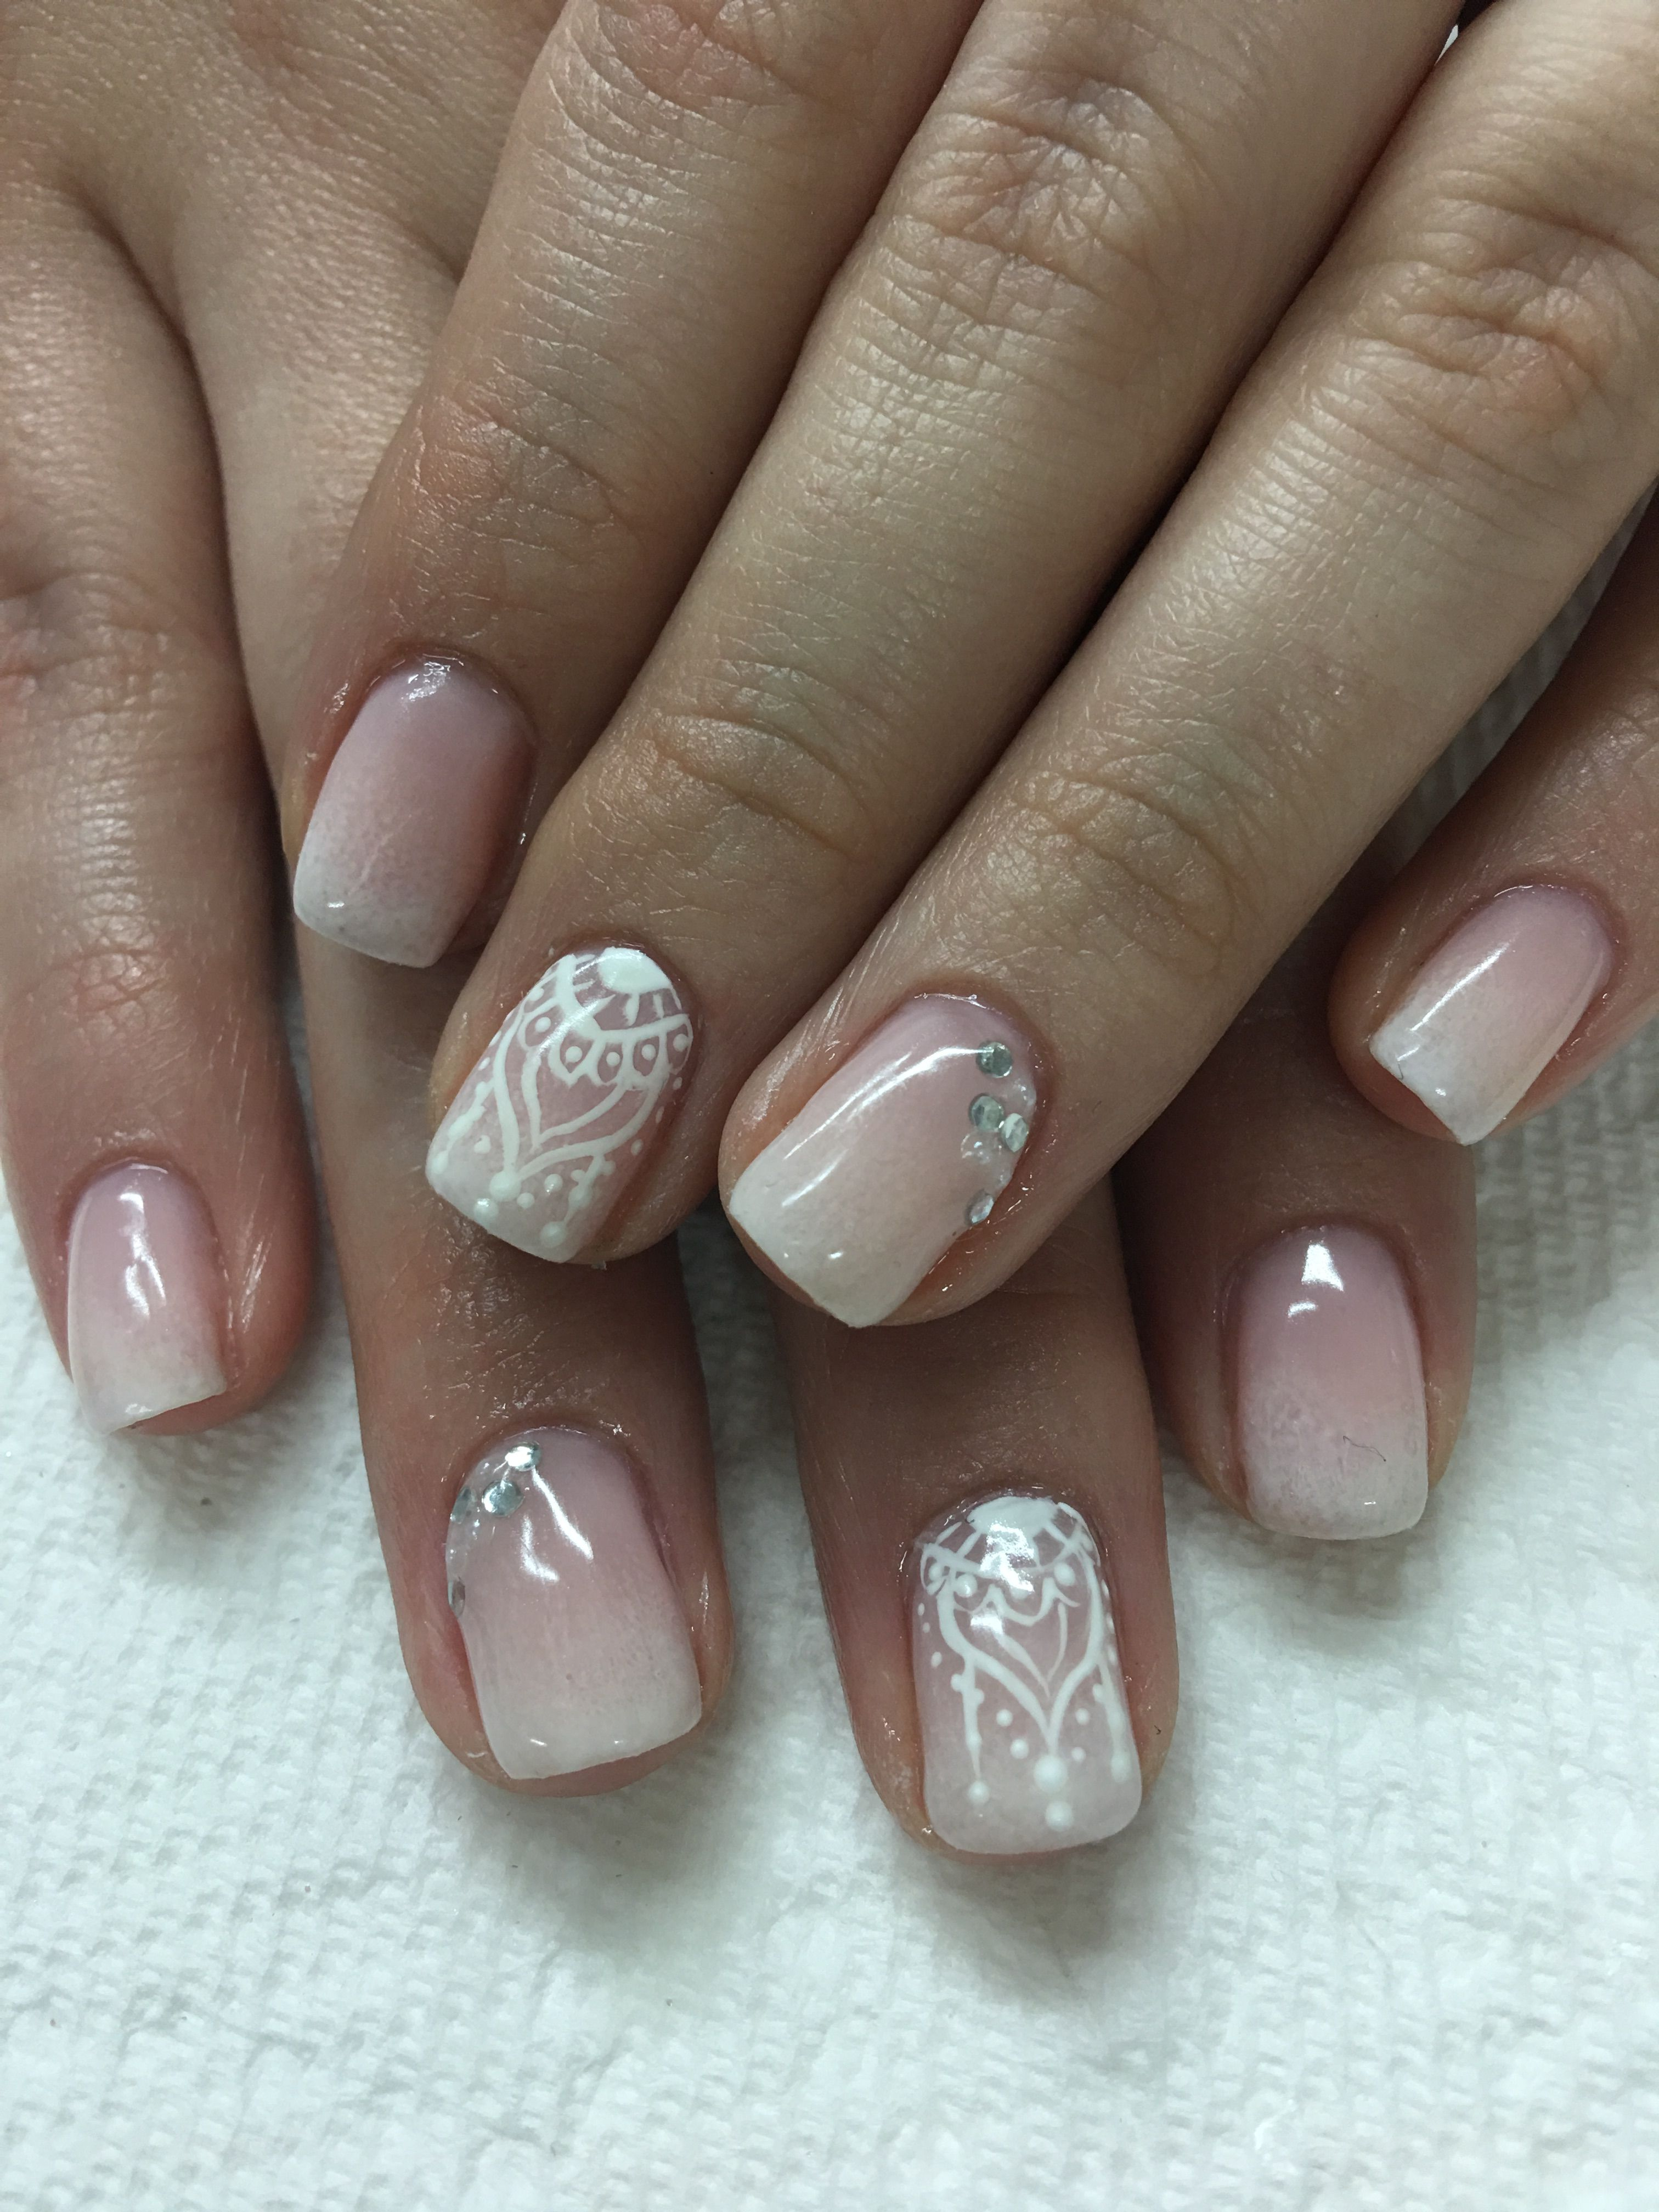 Bridal Honeymoon Hand Painted Opi Bubble Bath Ombre French Bling Gel Nails Gel Nails French Wedding Gel Nails Ombre Nail Designs